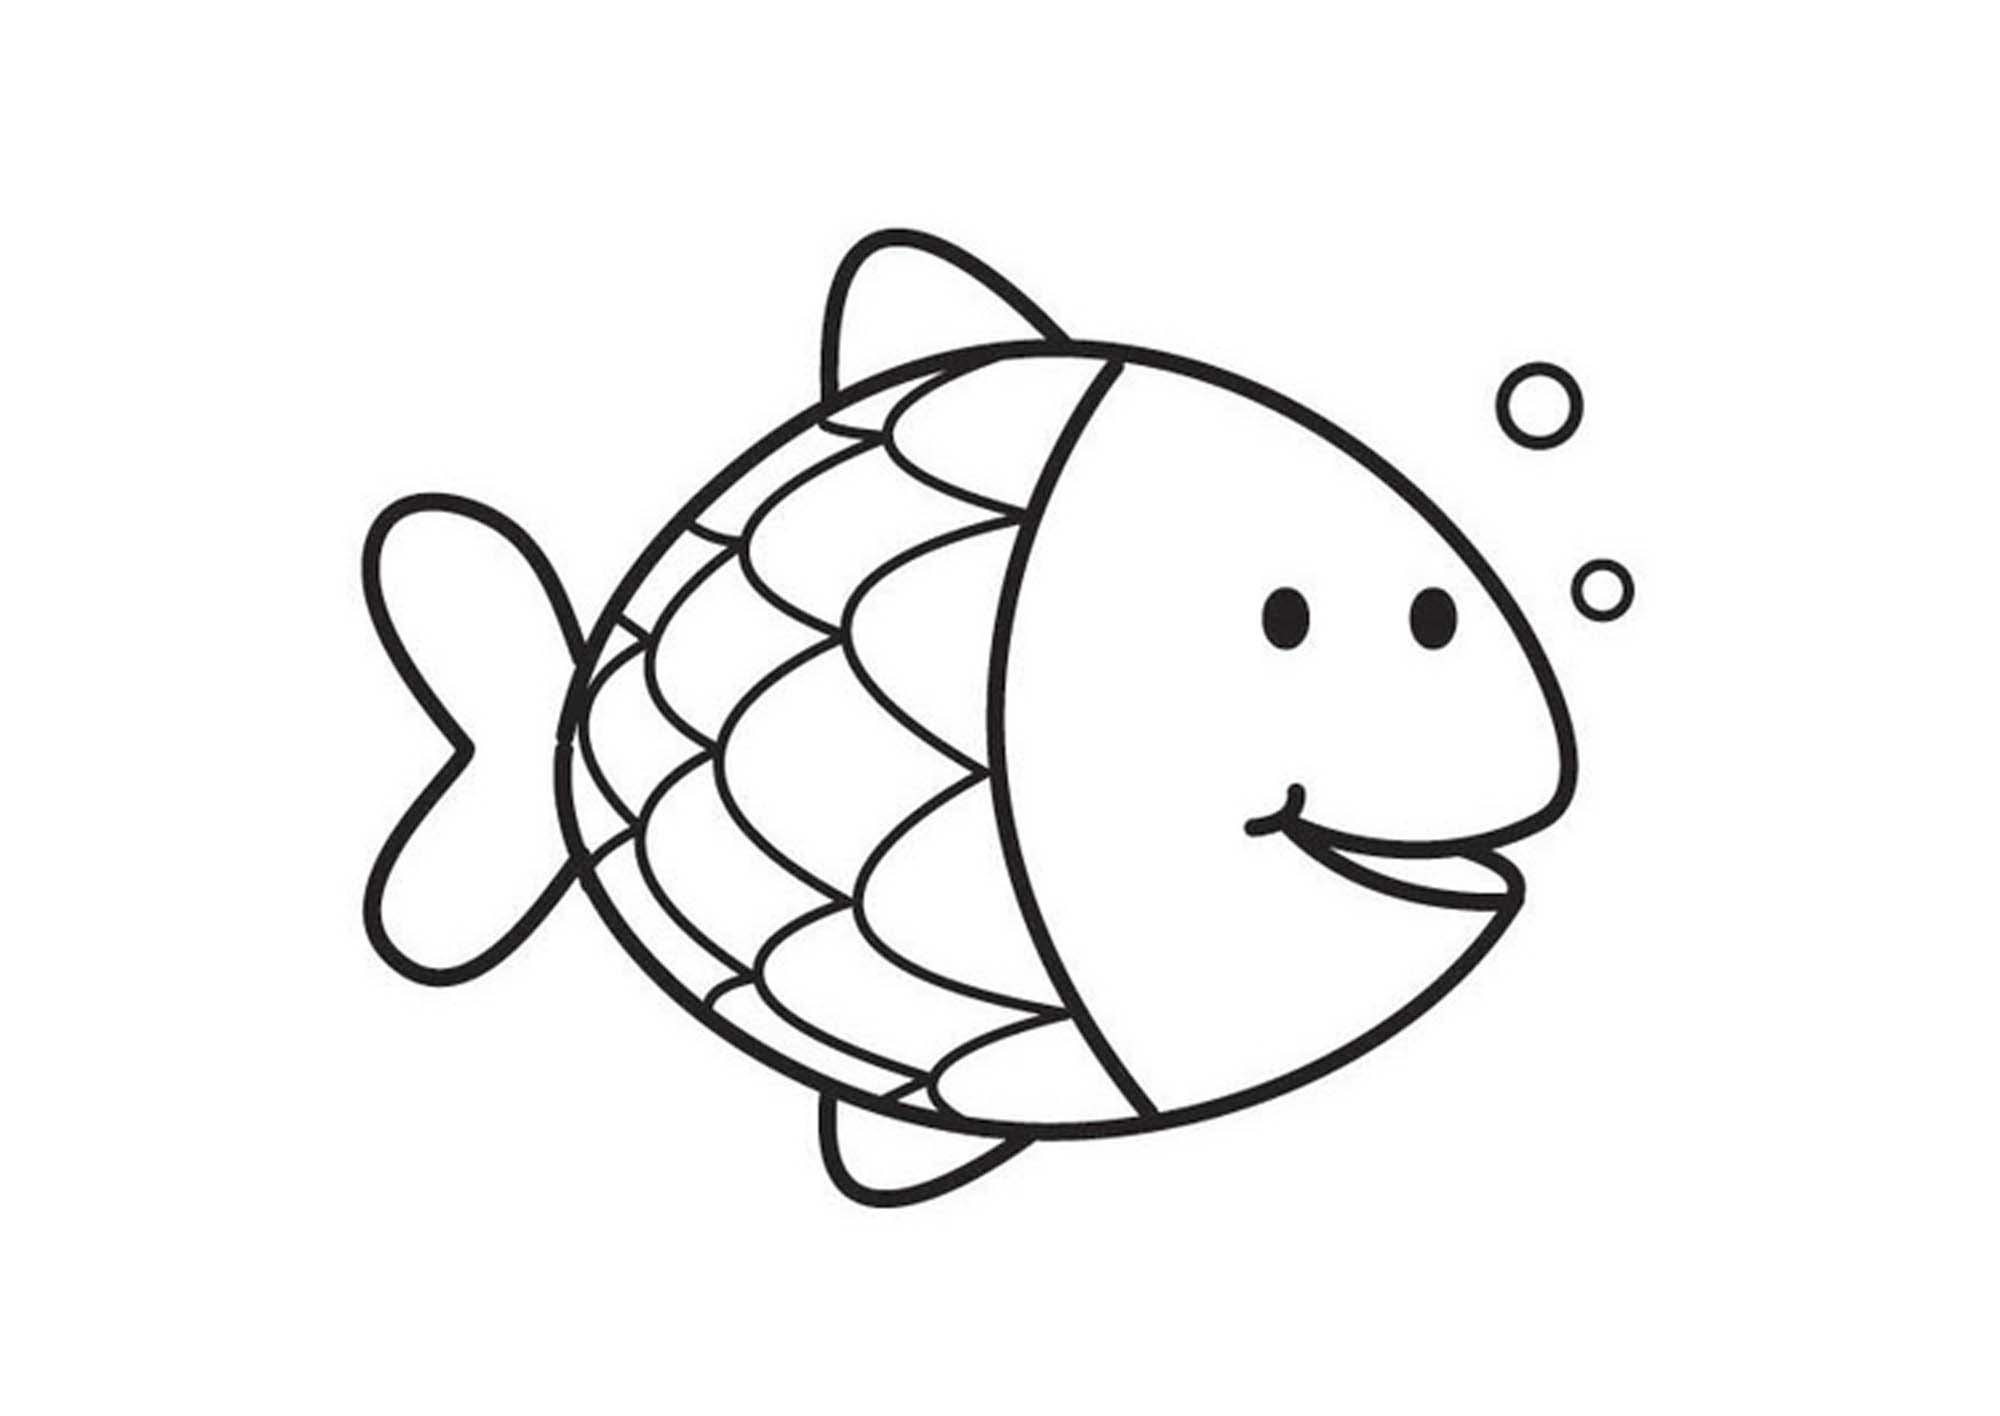 Rainbow Fish Coloring Pages Preschoolers Fish Coloring Pages Preschool